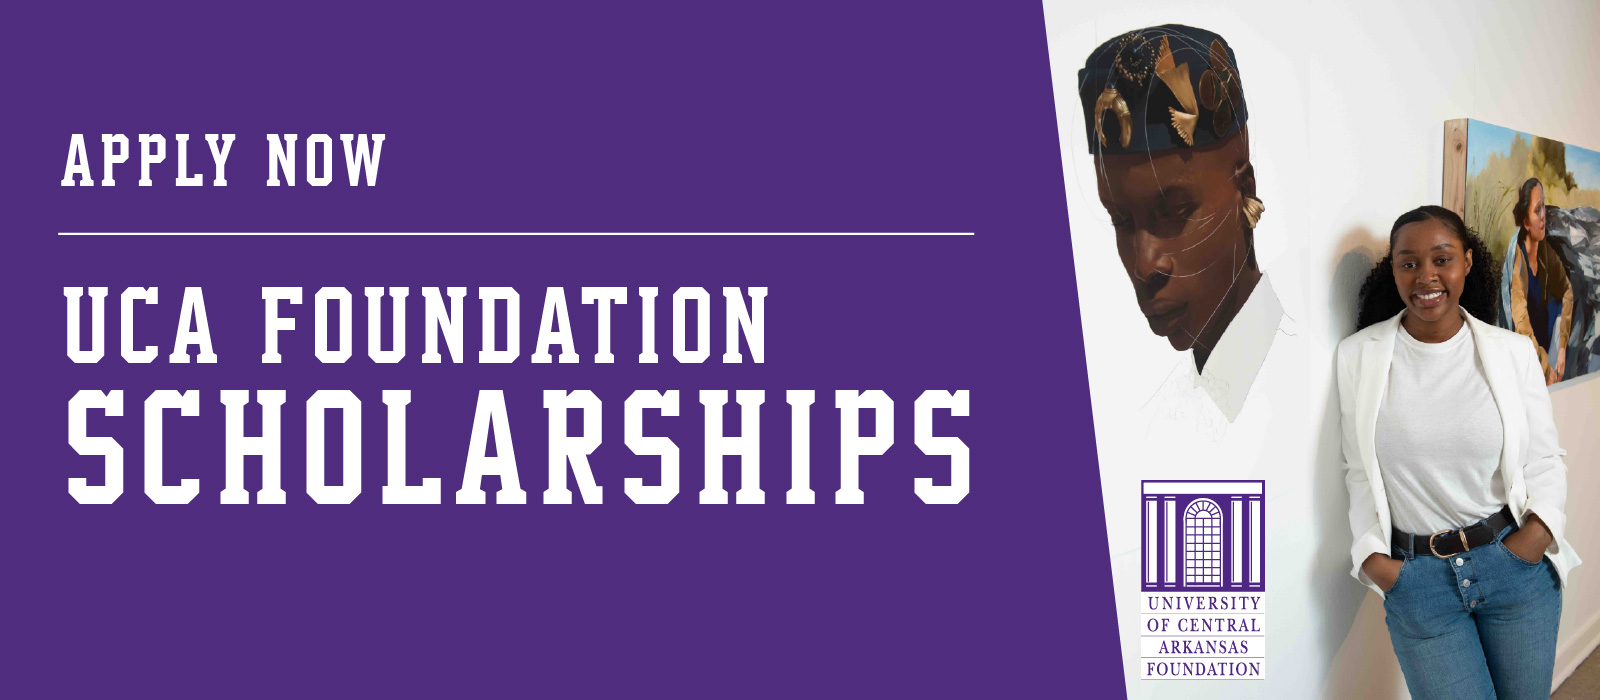 Foundation Scholarships - Apply Now